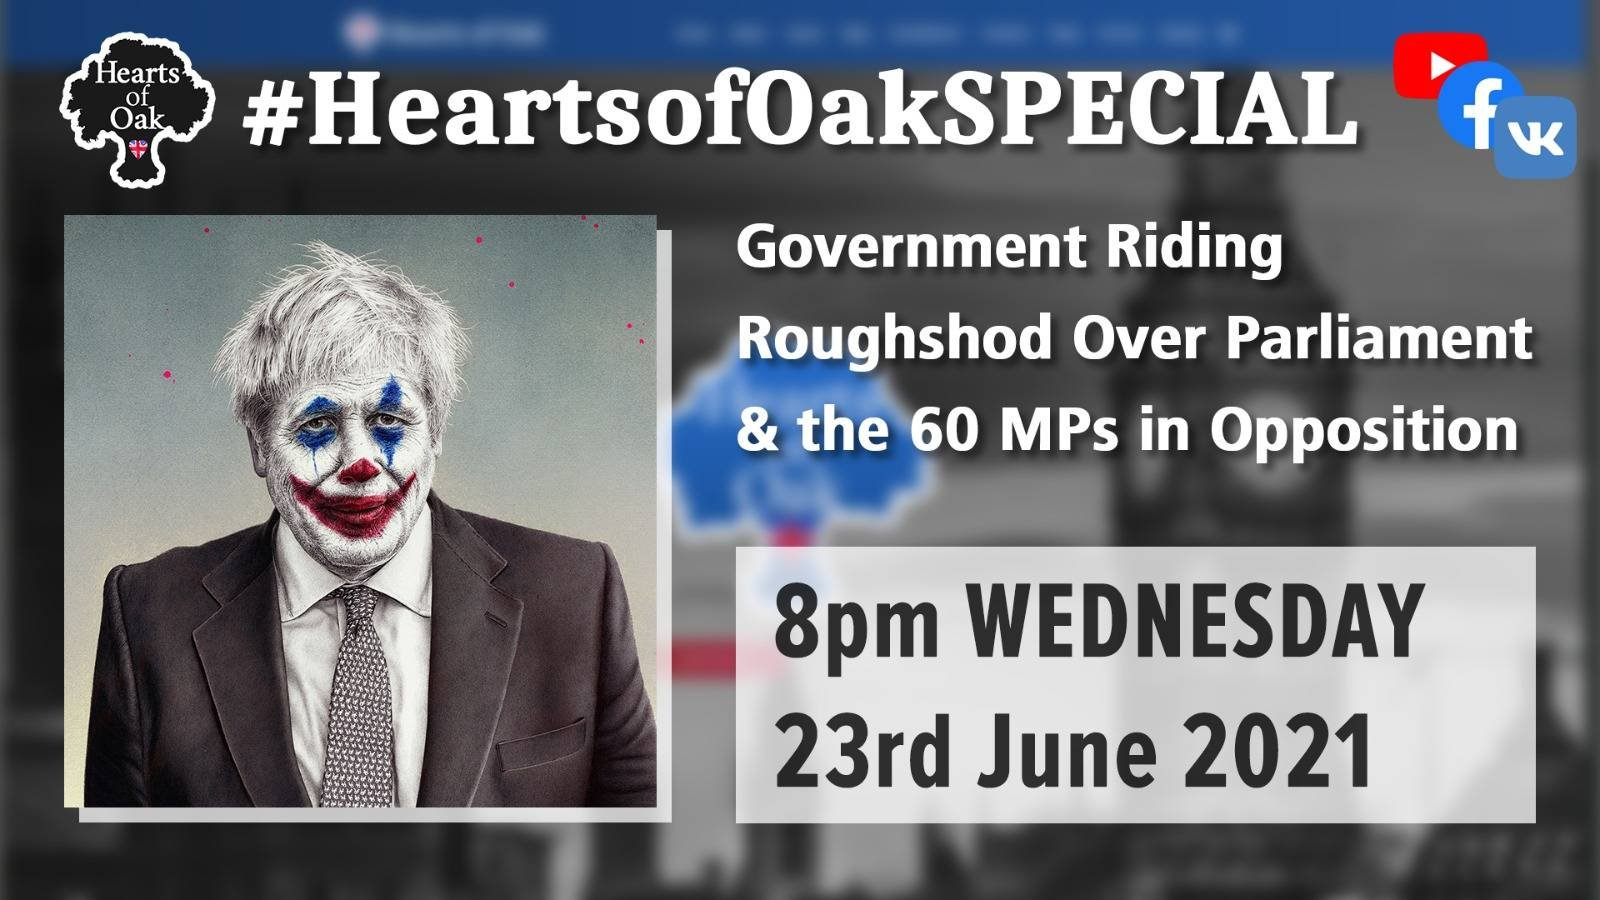 Government Riding Roughshod over Parliament & the 60 MP's in Opposition